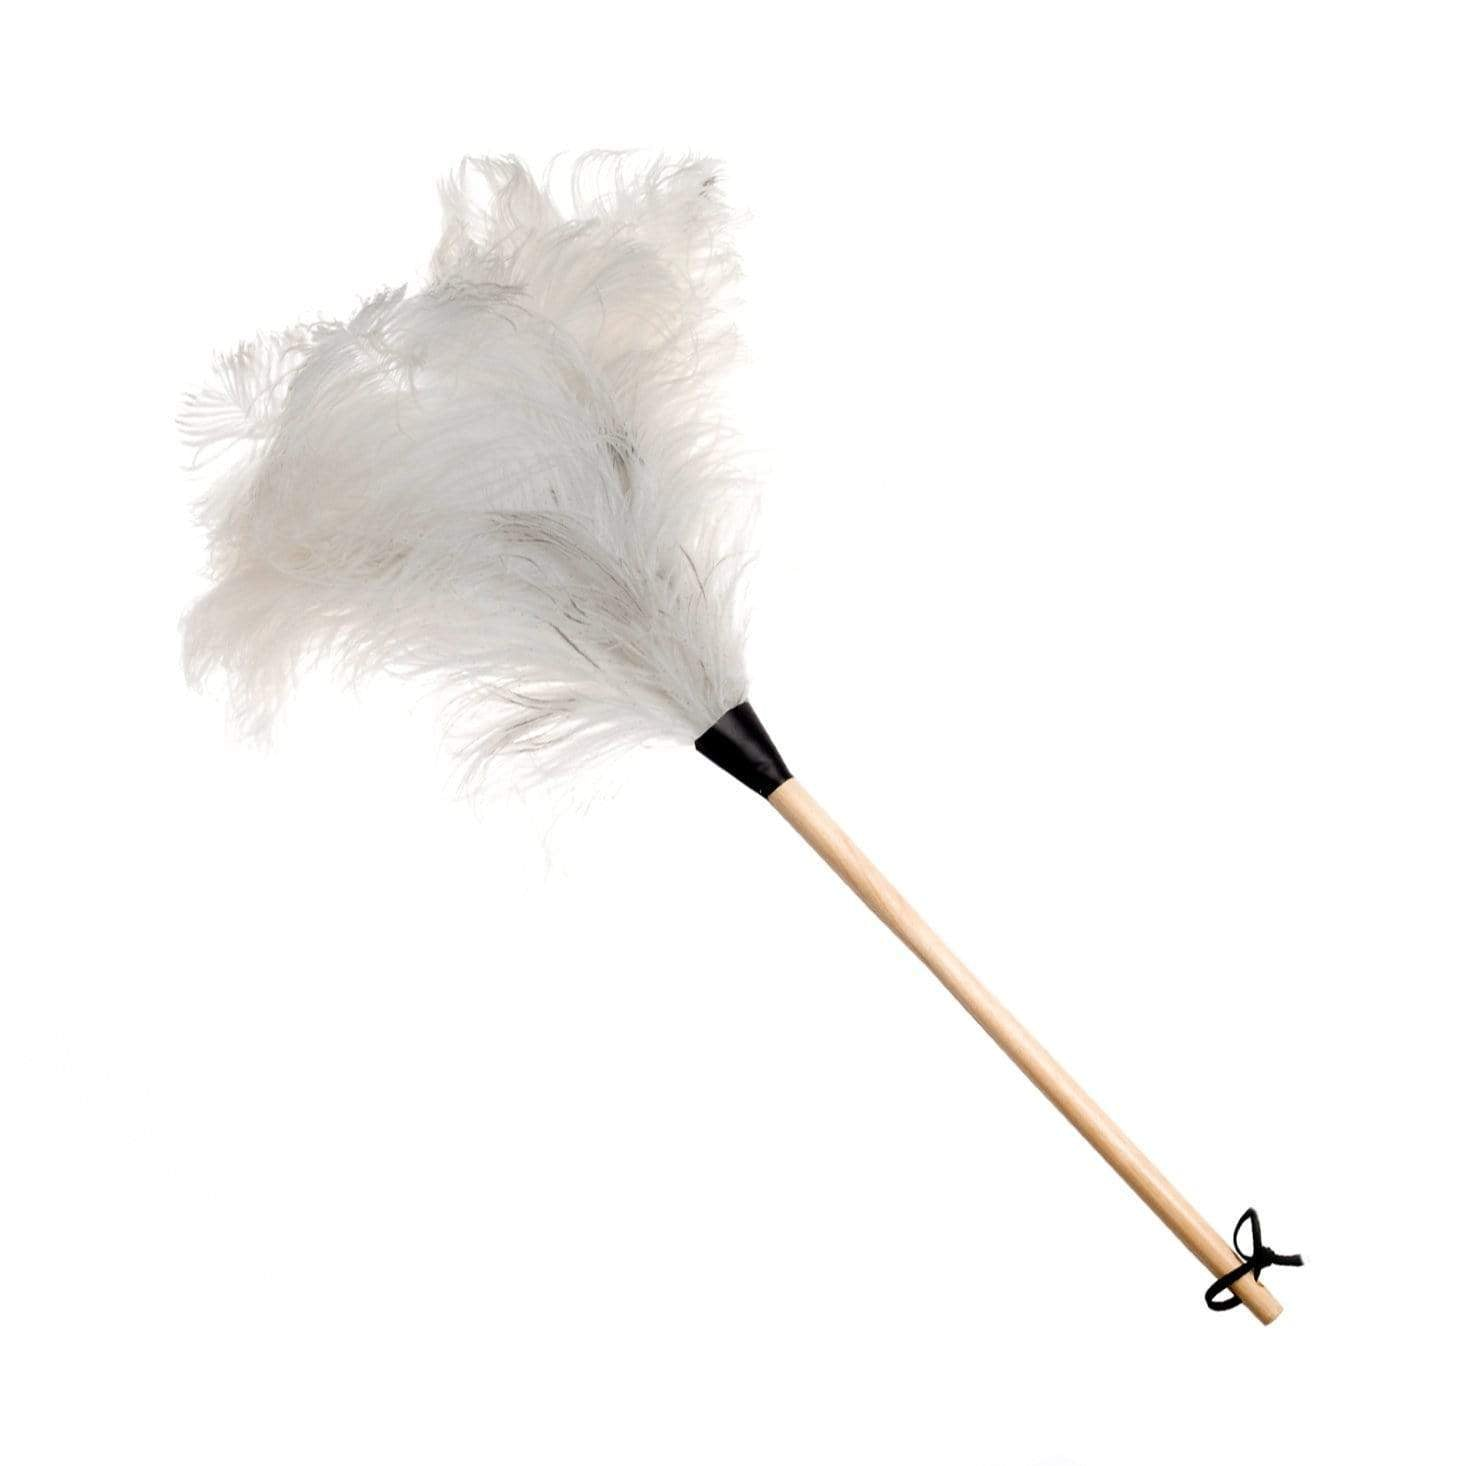 Redecker White Ostrich Feather Duster 70cm